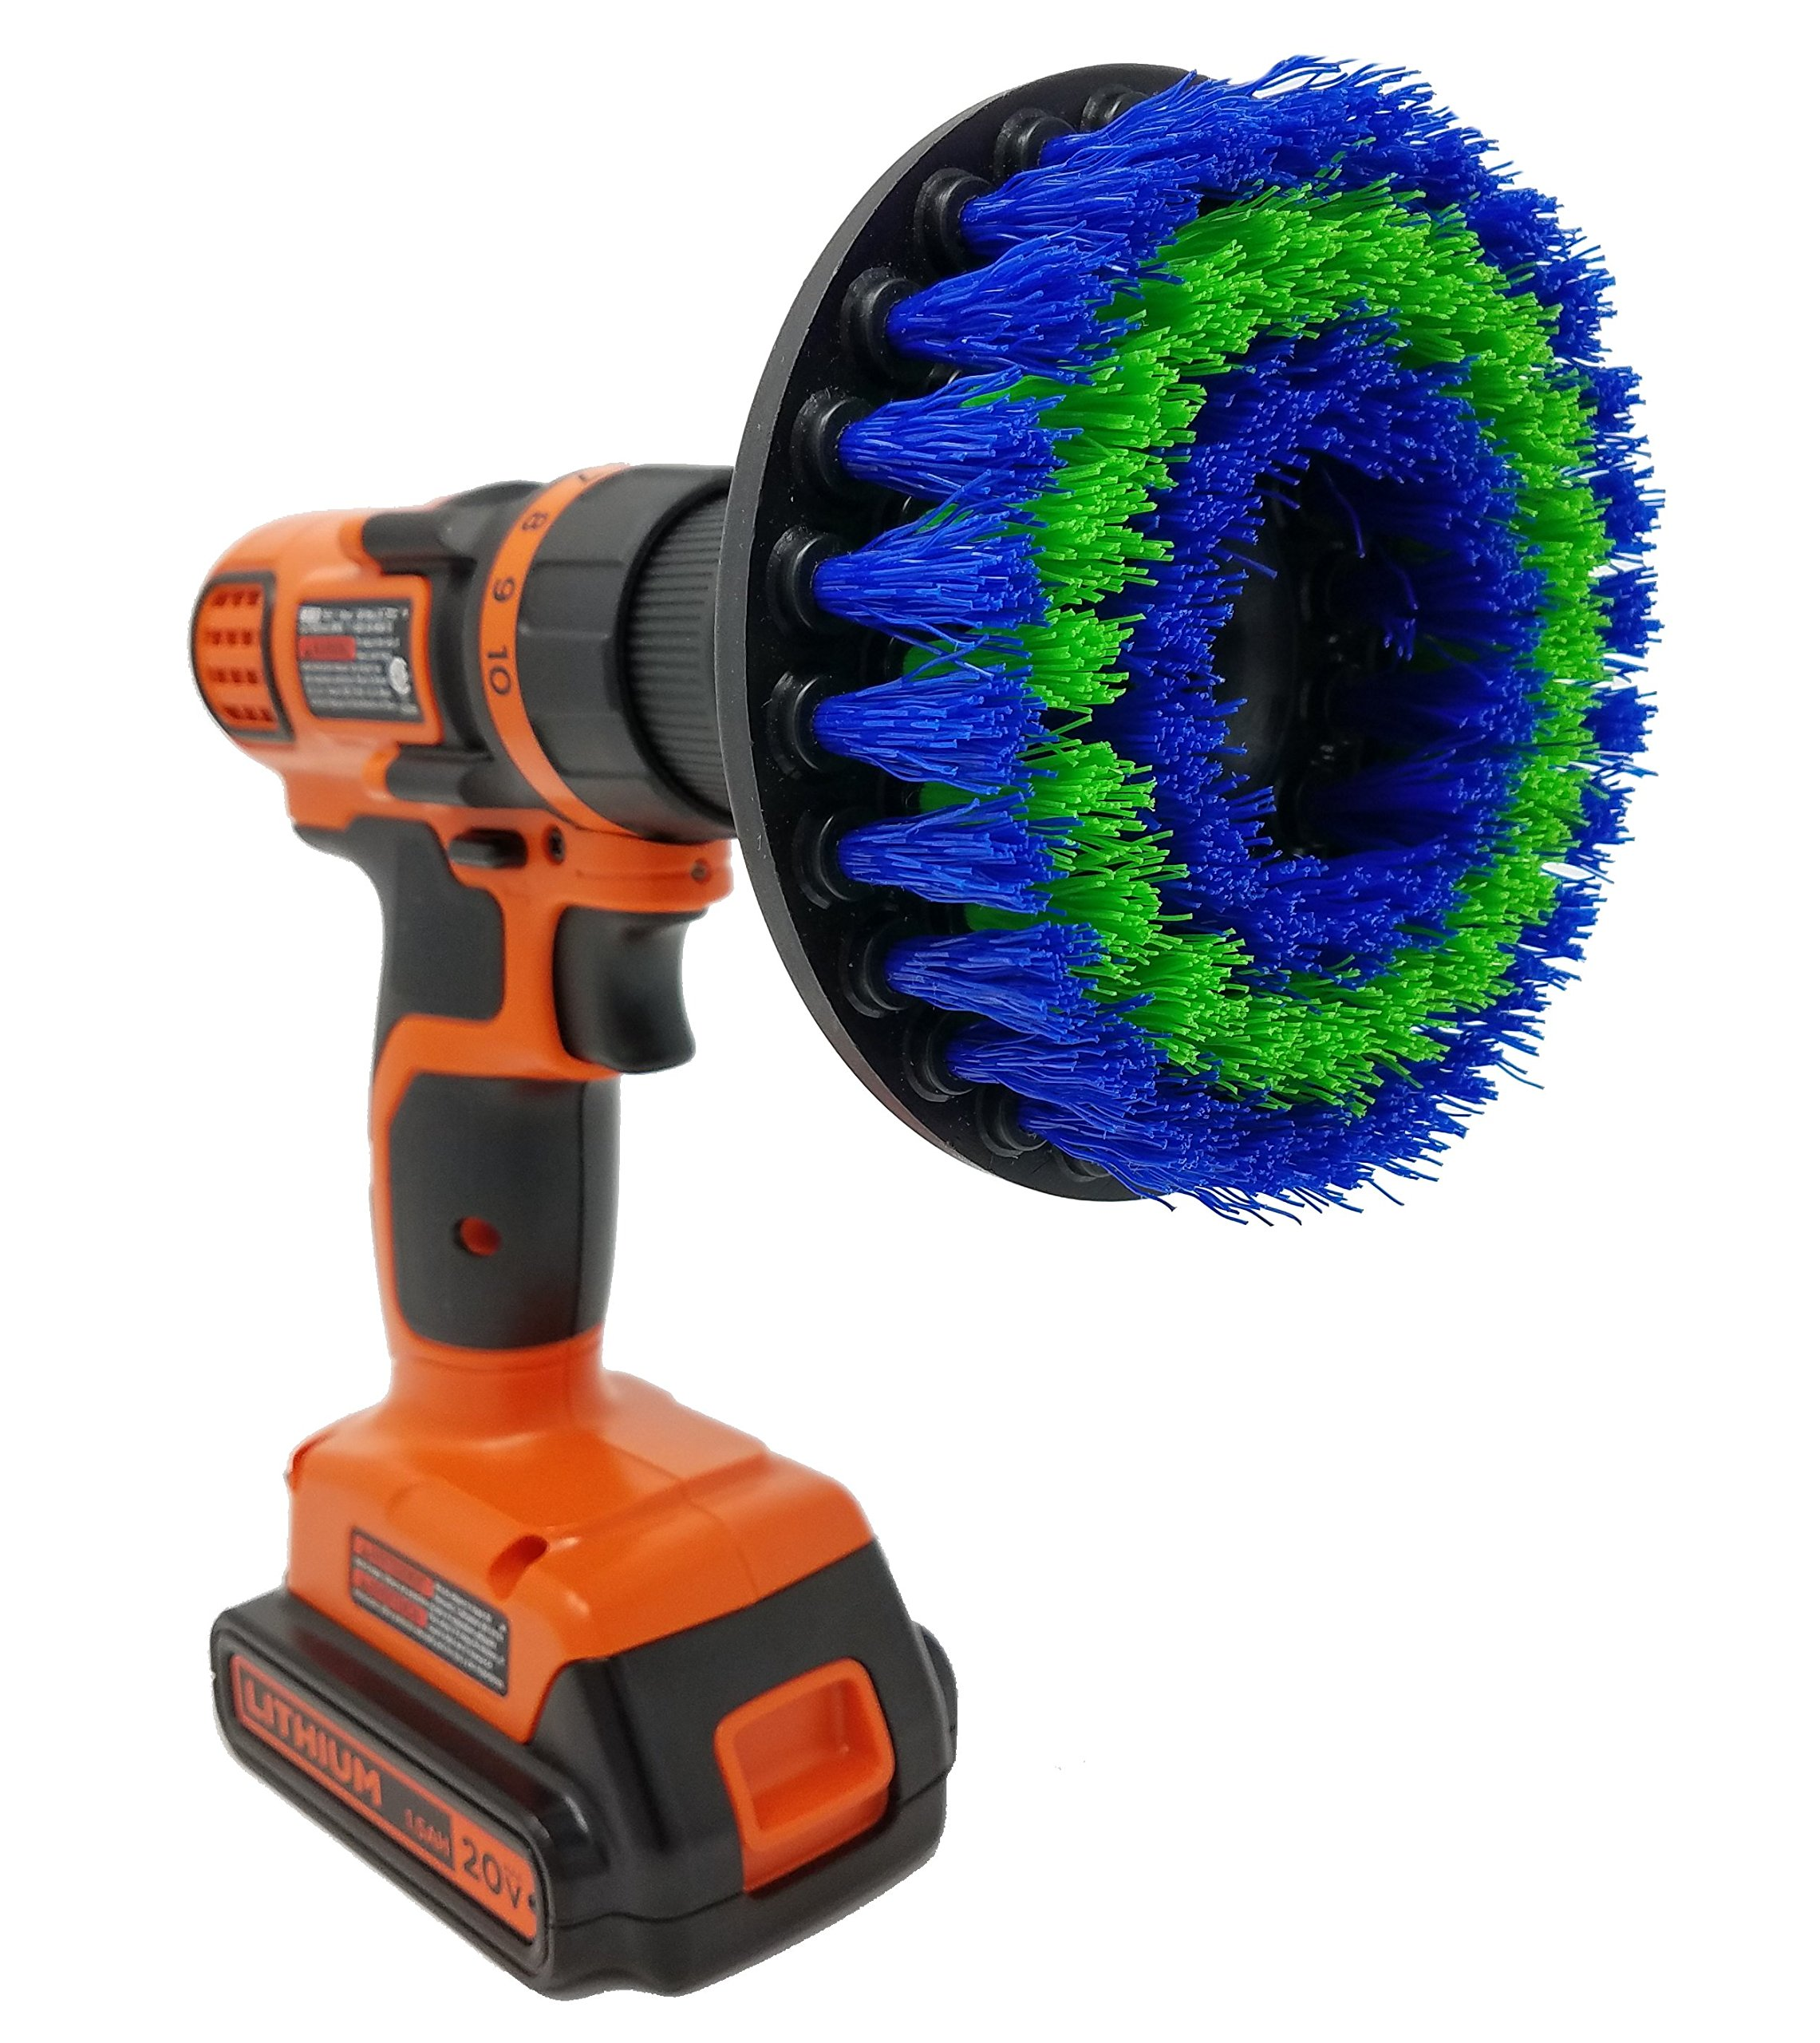 Medium 5'' Drill Brush Attachment: Beast Brush Spin Power Scrubber for Fast and Easy Cleaning, Medium Bristles